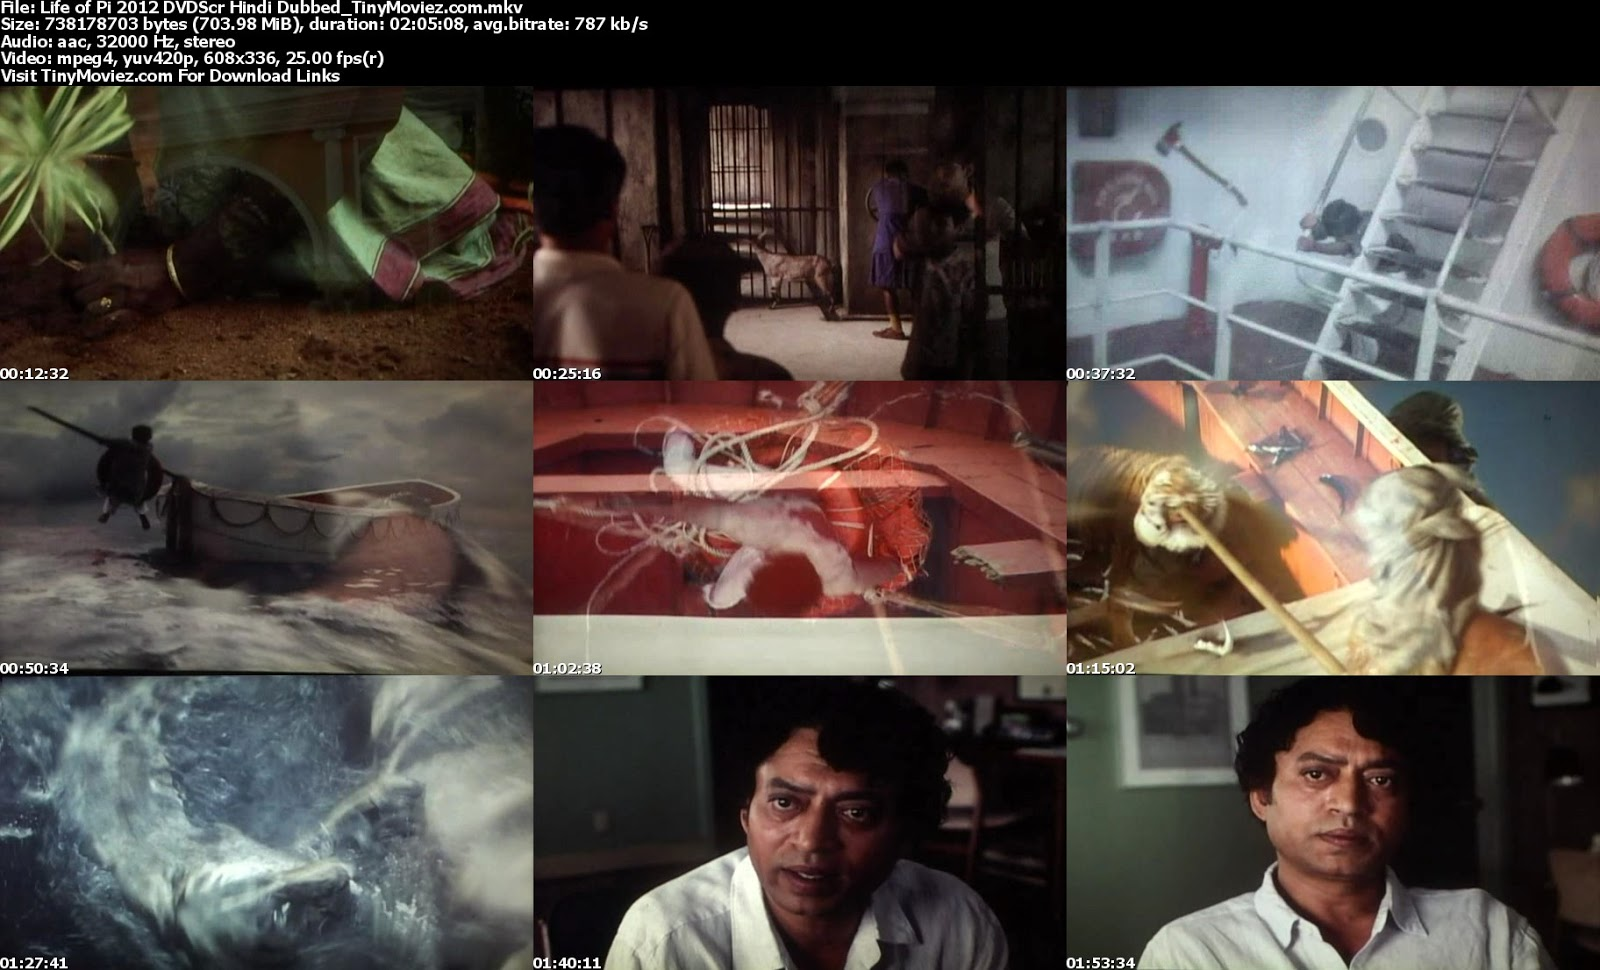 Life of pi 2012 dvdscr hindi dubbed 700mb download free for Life of pi in hindi